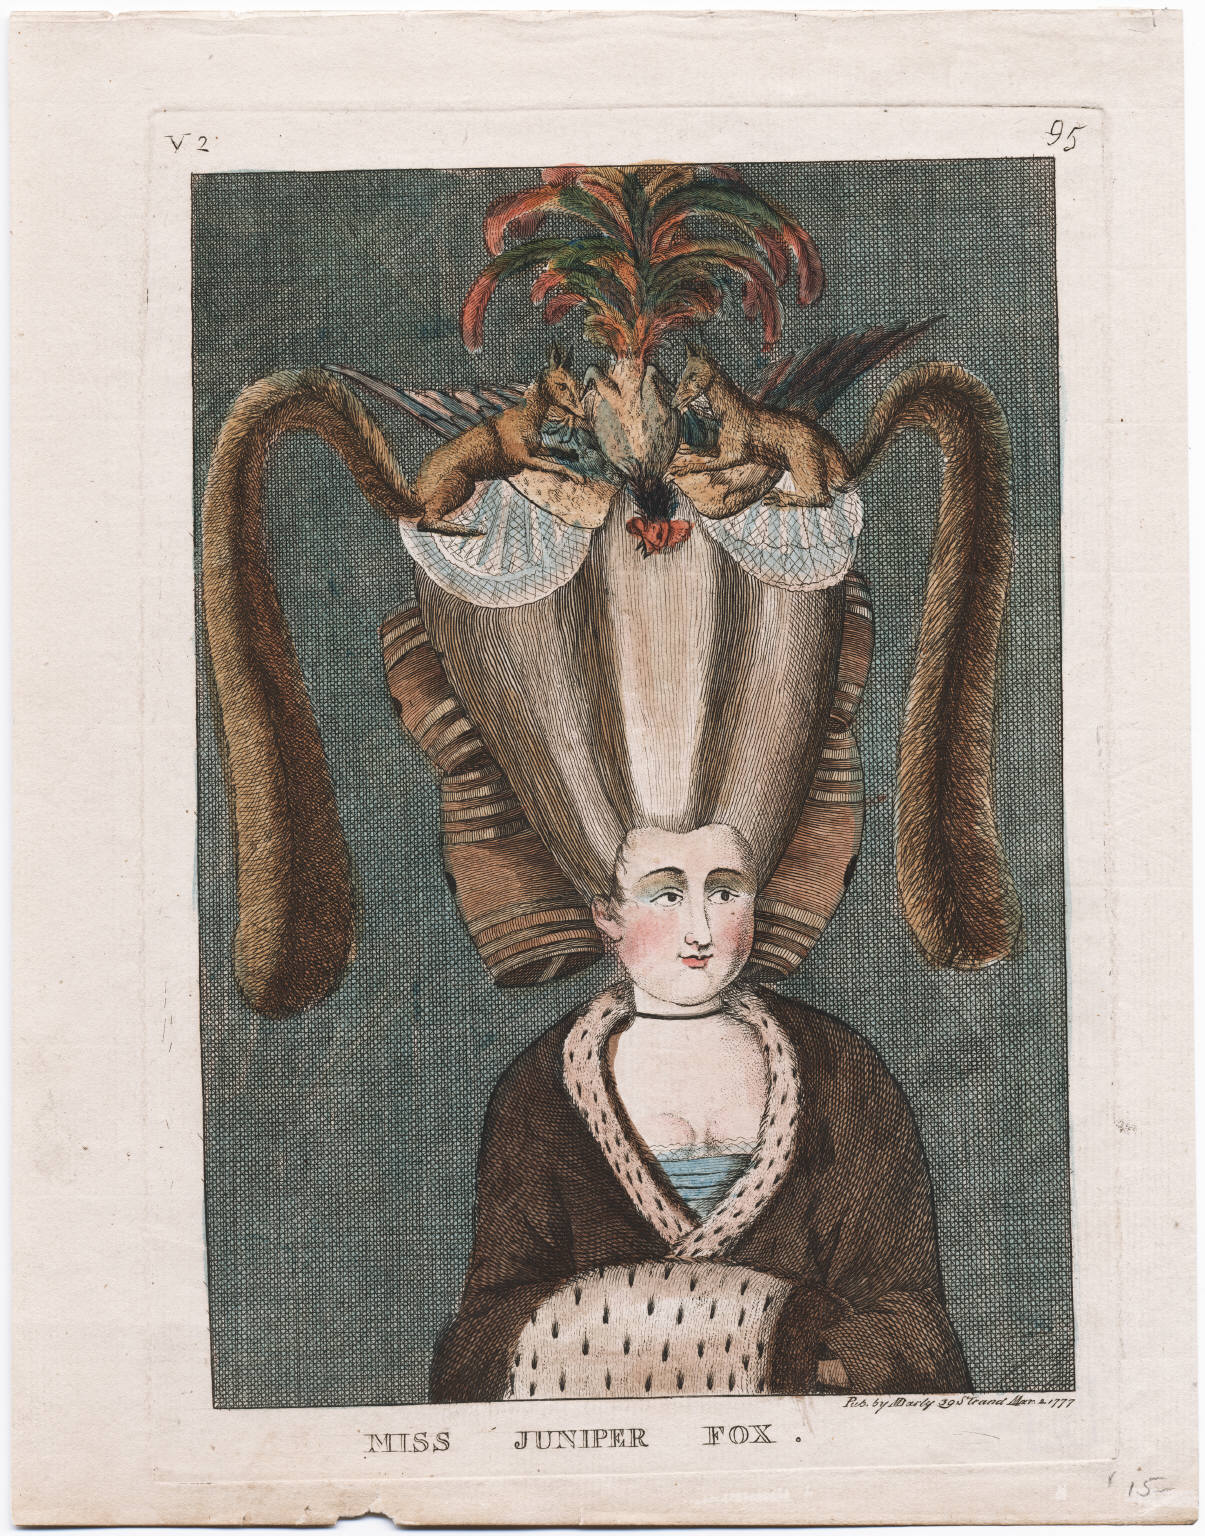 Old Hairstyles, Baroque, Hairstyles, wig, hairpiece, false hair, great hairstyle, 18th Century